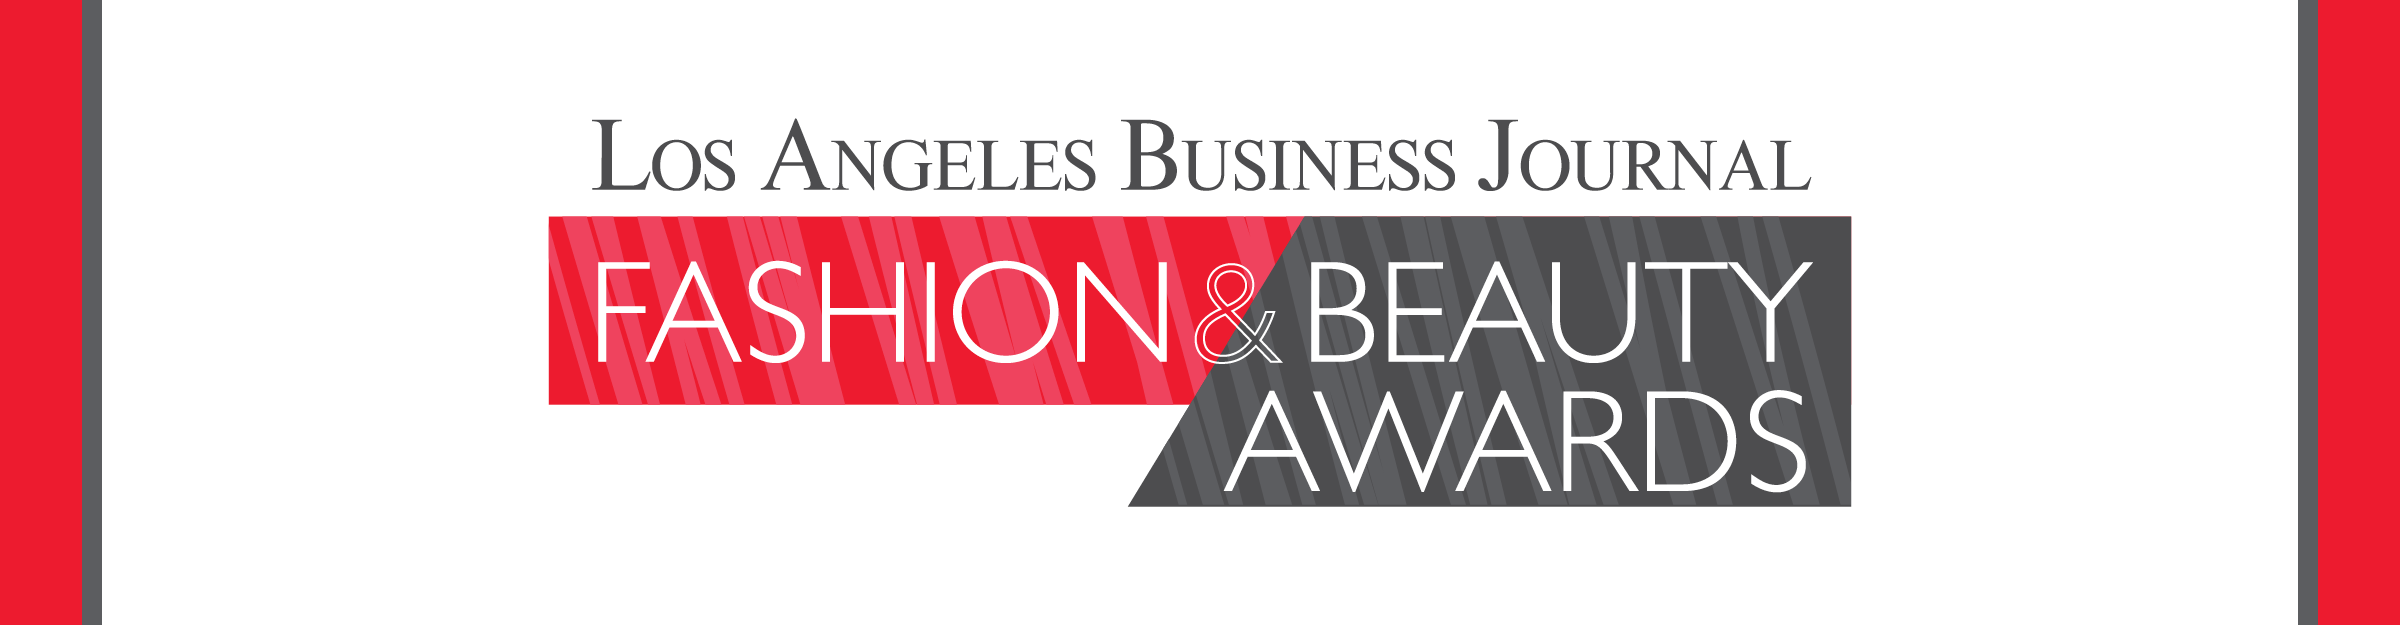 Los Angeles Business Journal Fashion & Beauty Awards Event Banner